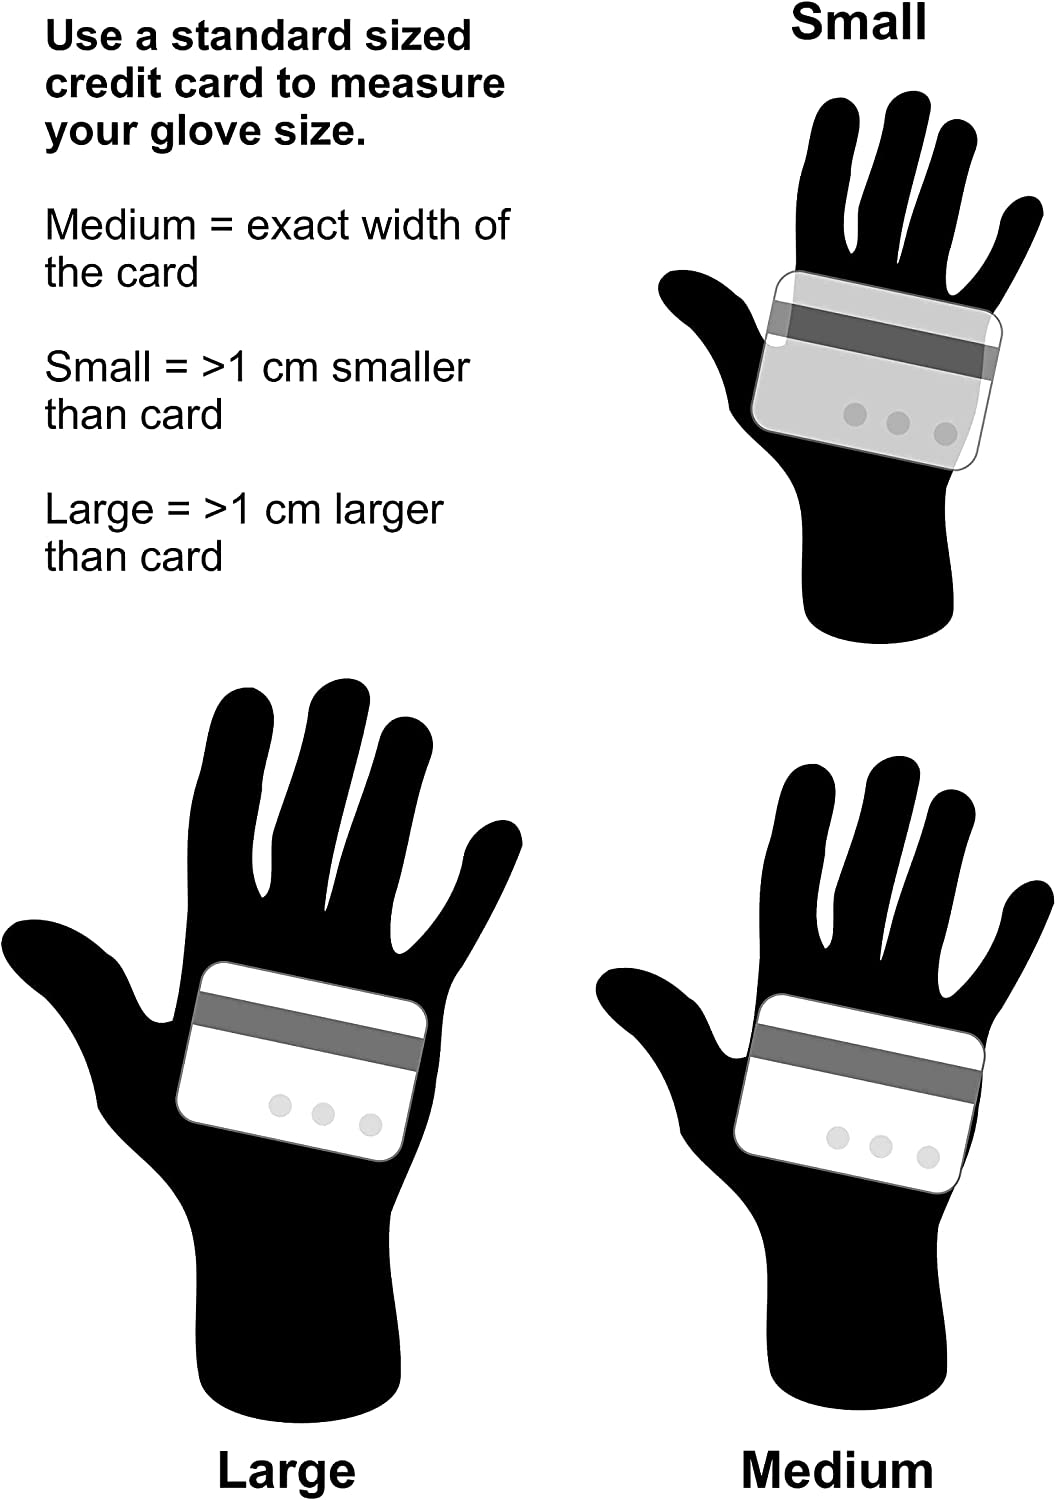 Ergo Glove - The #1 Typing Glove for Cold Offices  Limber Hands With Compression   Clean Laptop Palm Rests